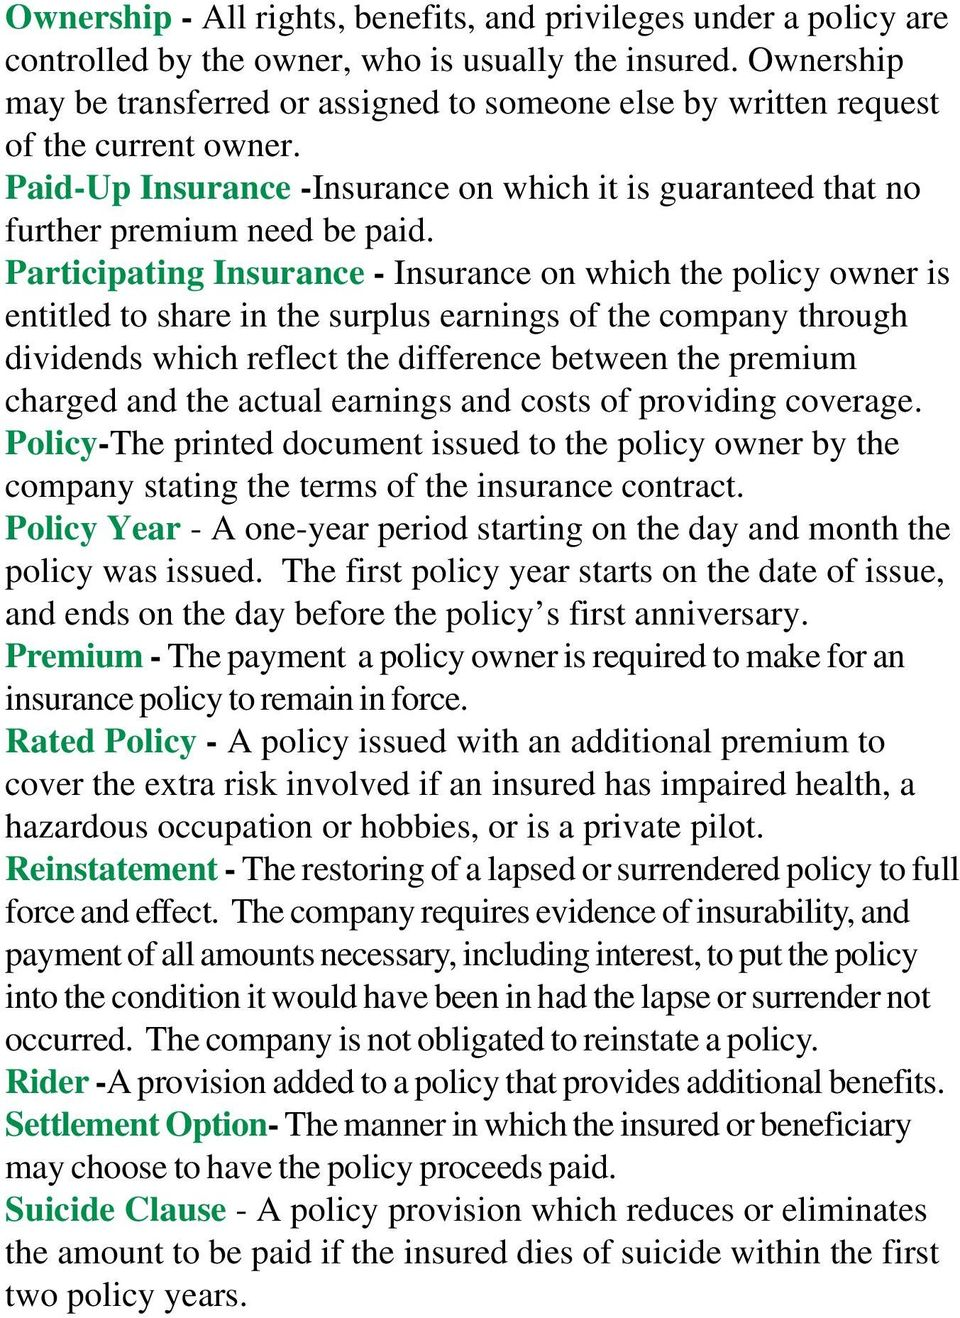 Participating Insurance - Insurance on which the policy owner is entitled to share in the surplus earnings of the company through dividends which reflect the difference between the premium charged